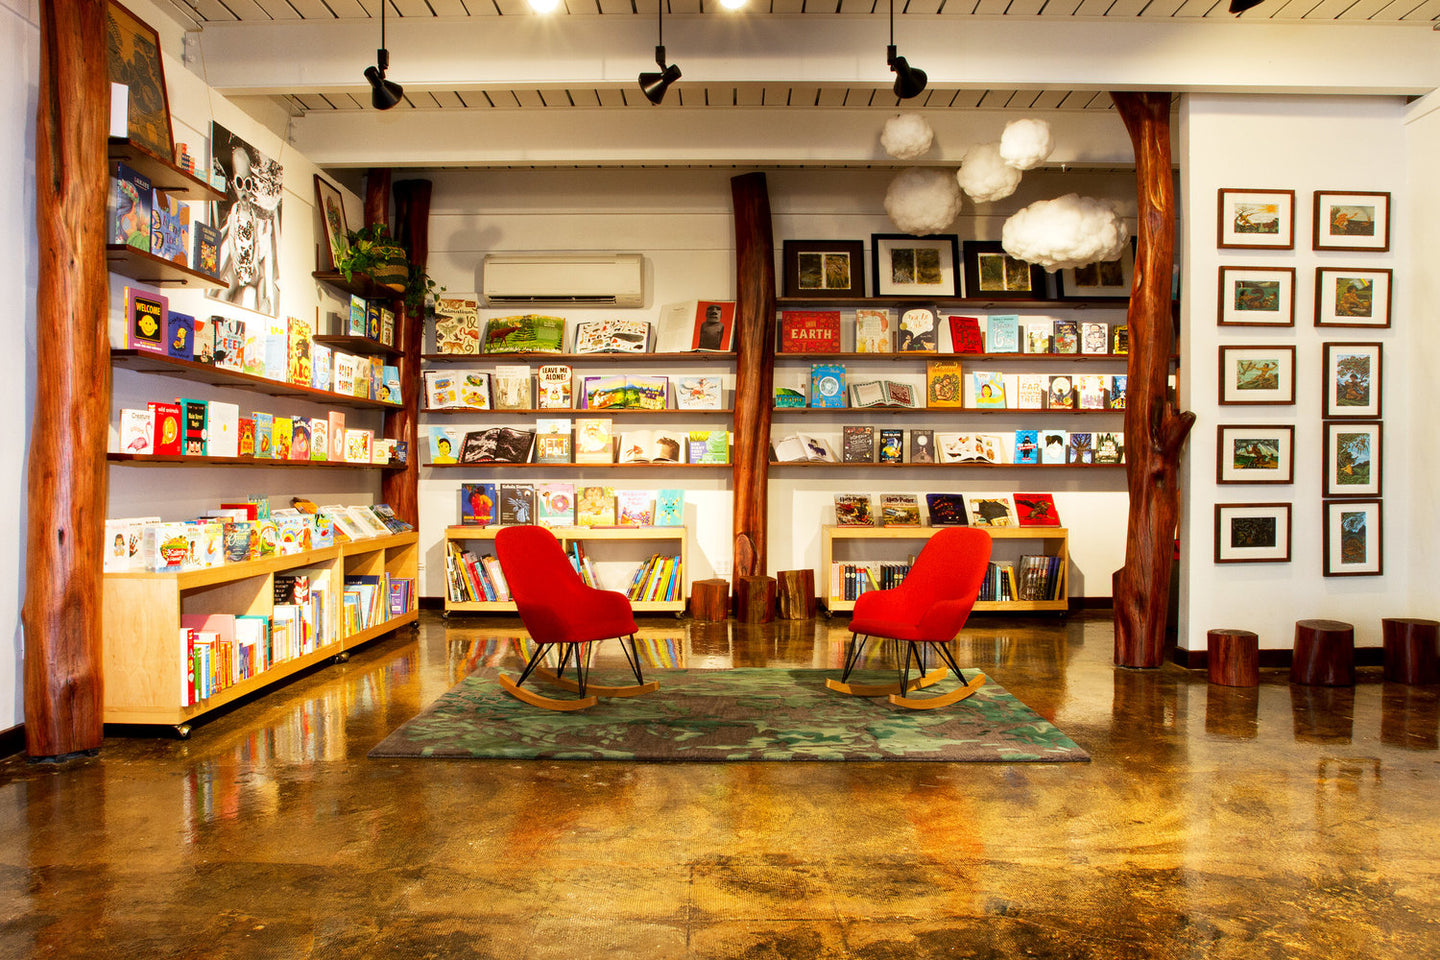 da Shop: books + curiosities